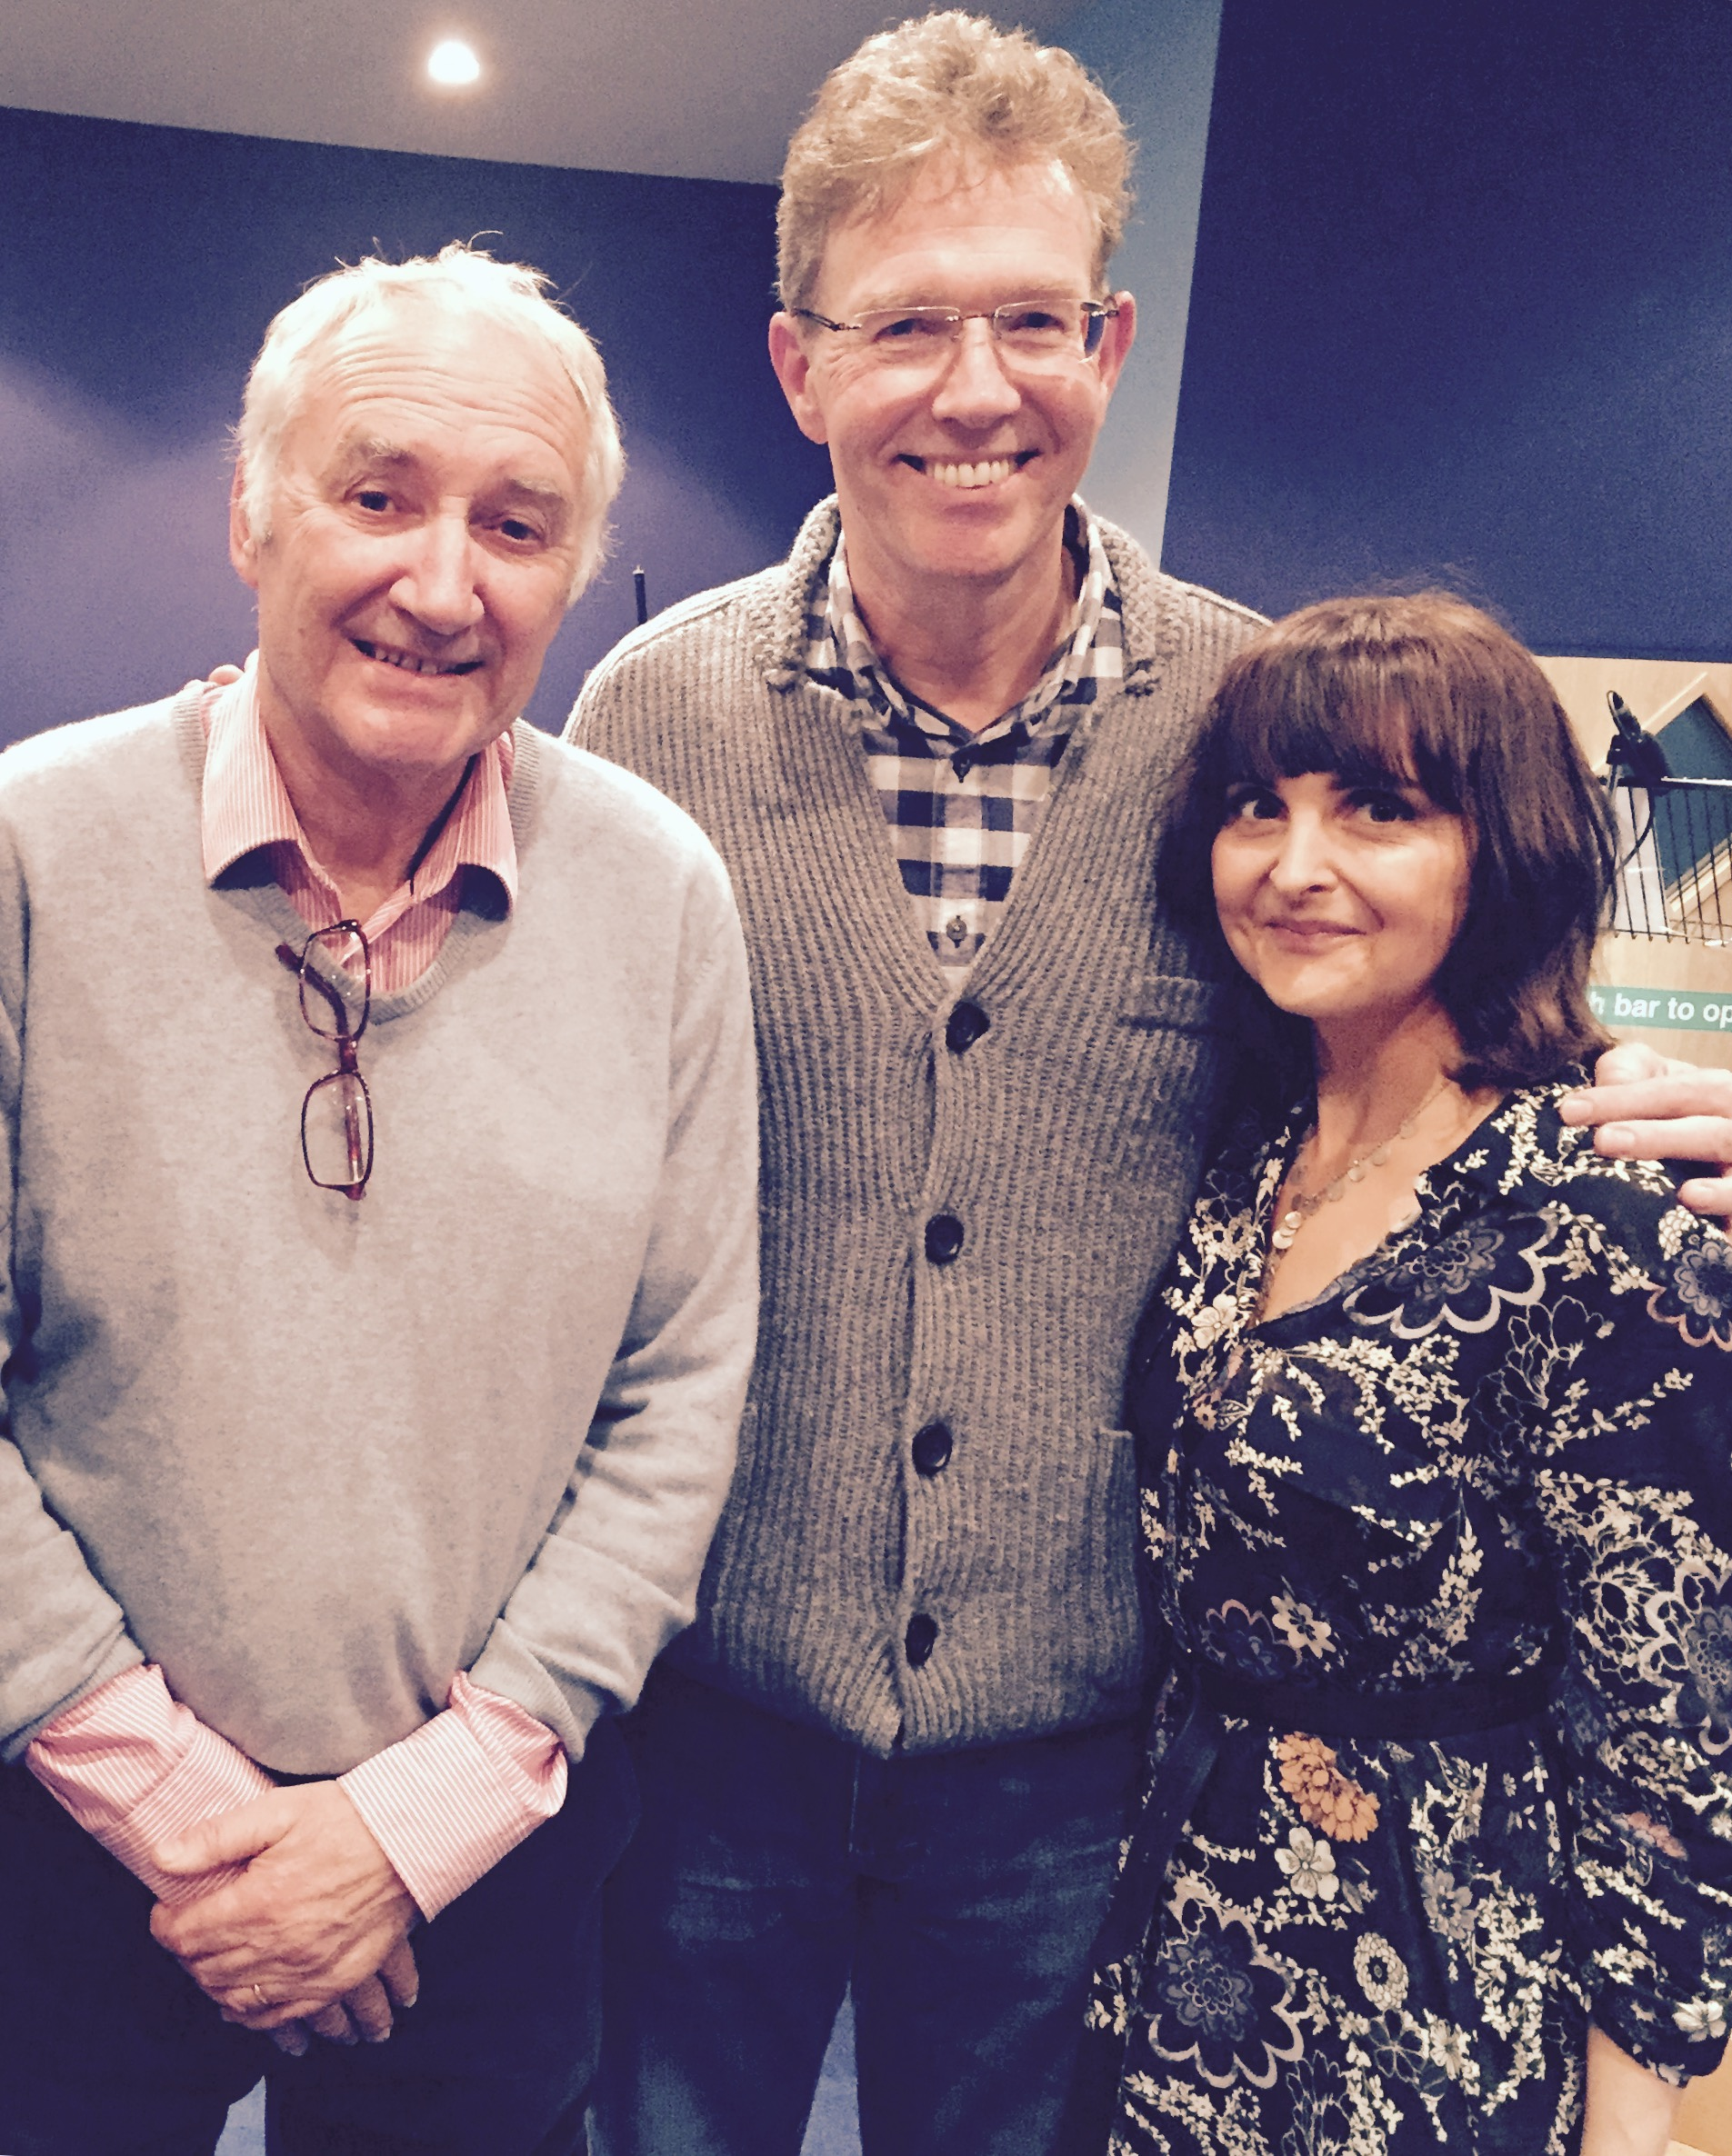 Photo taken with Michael Keating (Vila) and Stephen Pacey (Tarrant). Big Finish Audio Blakes7.